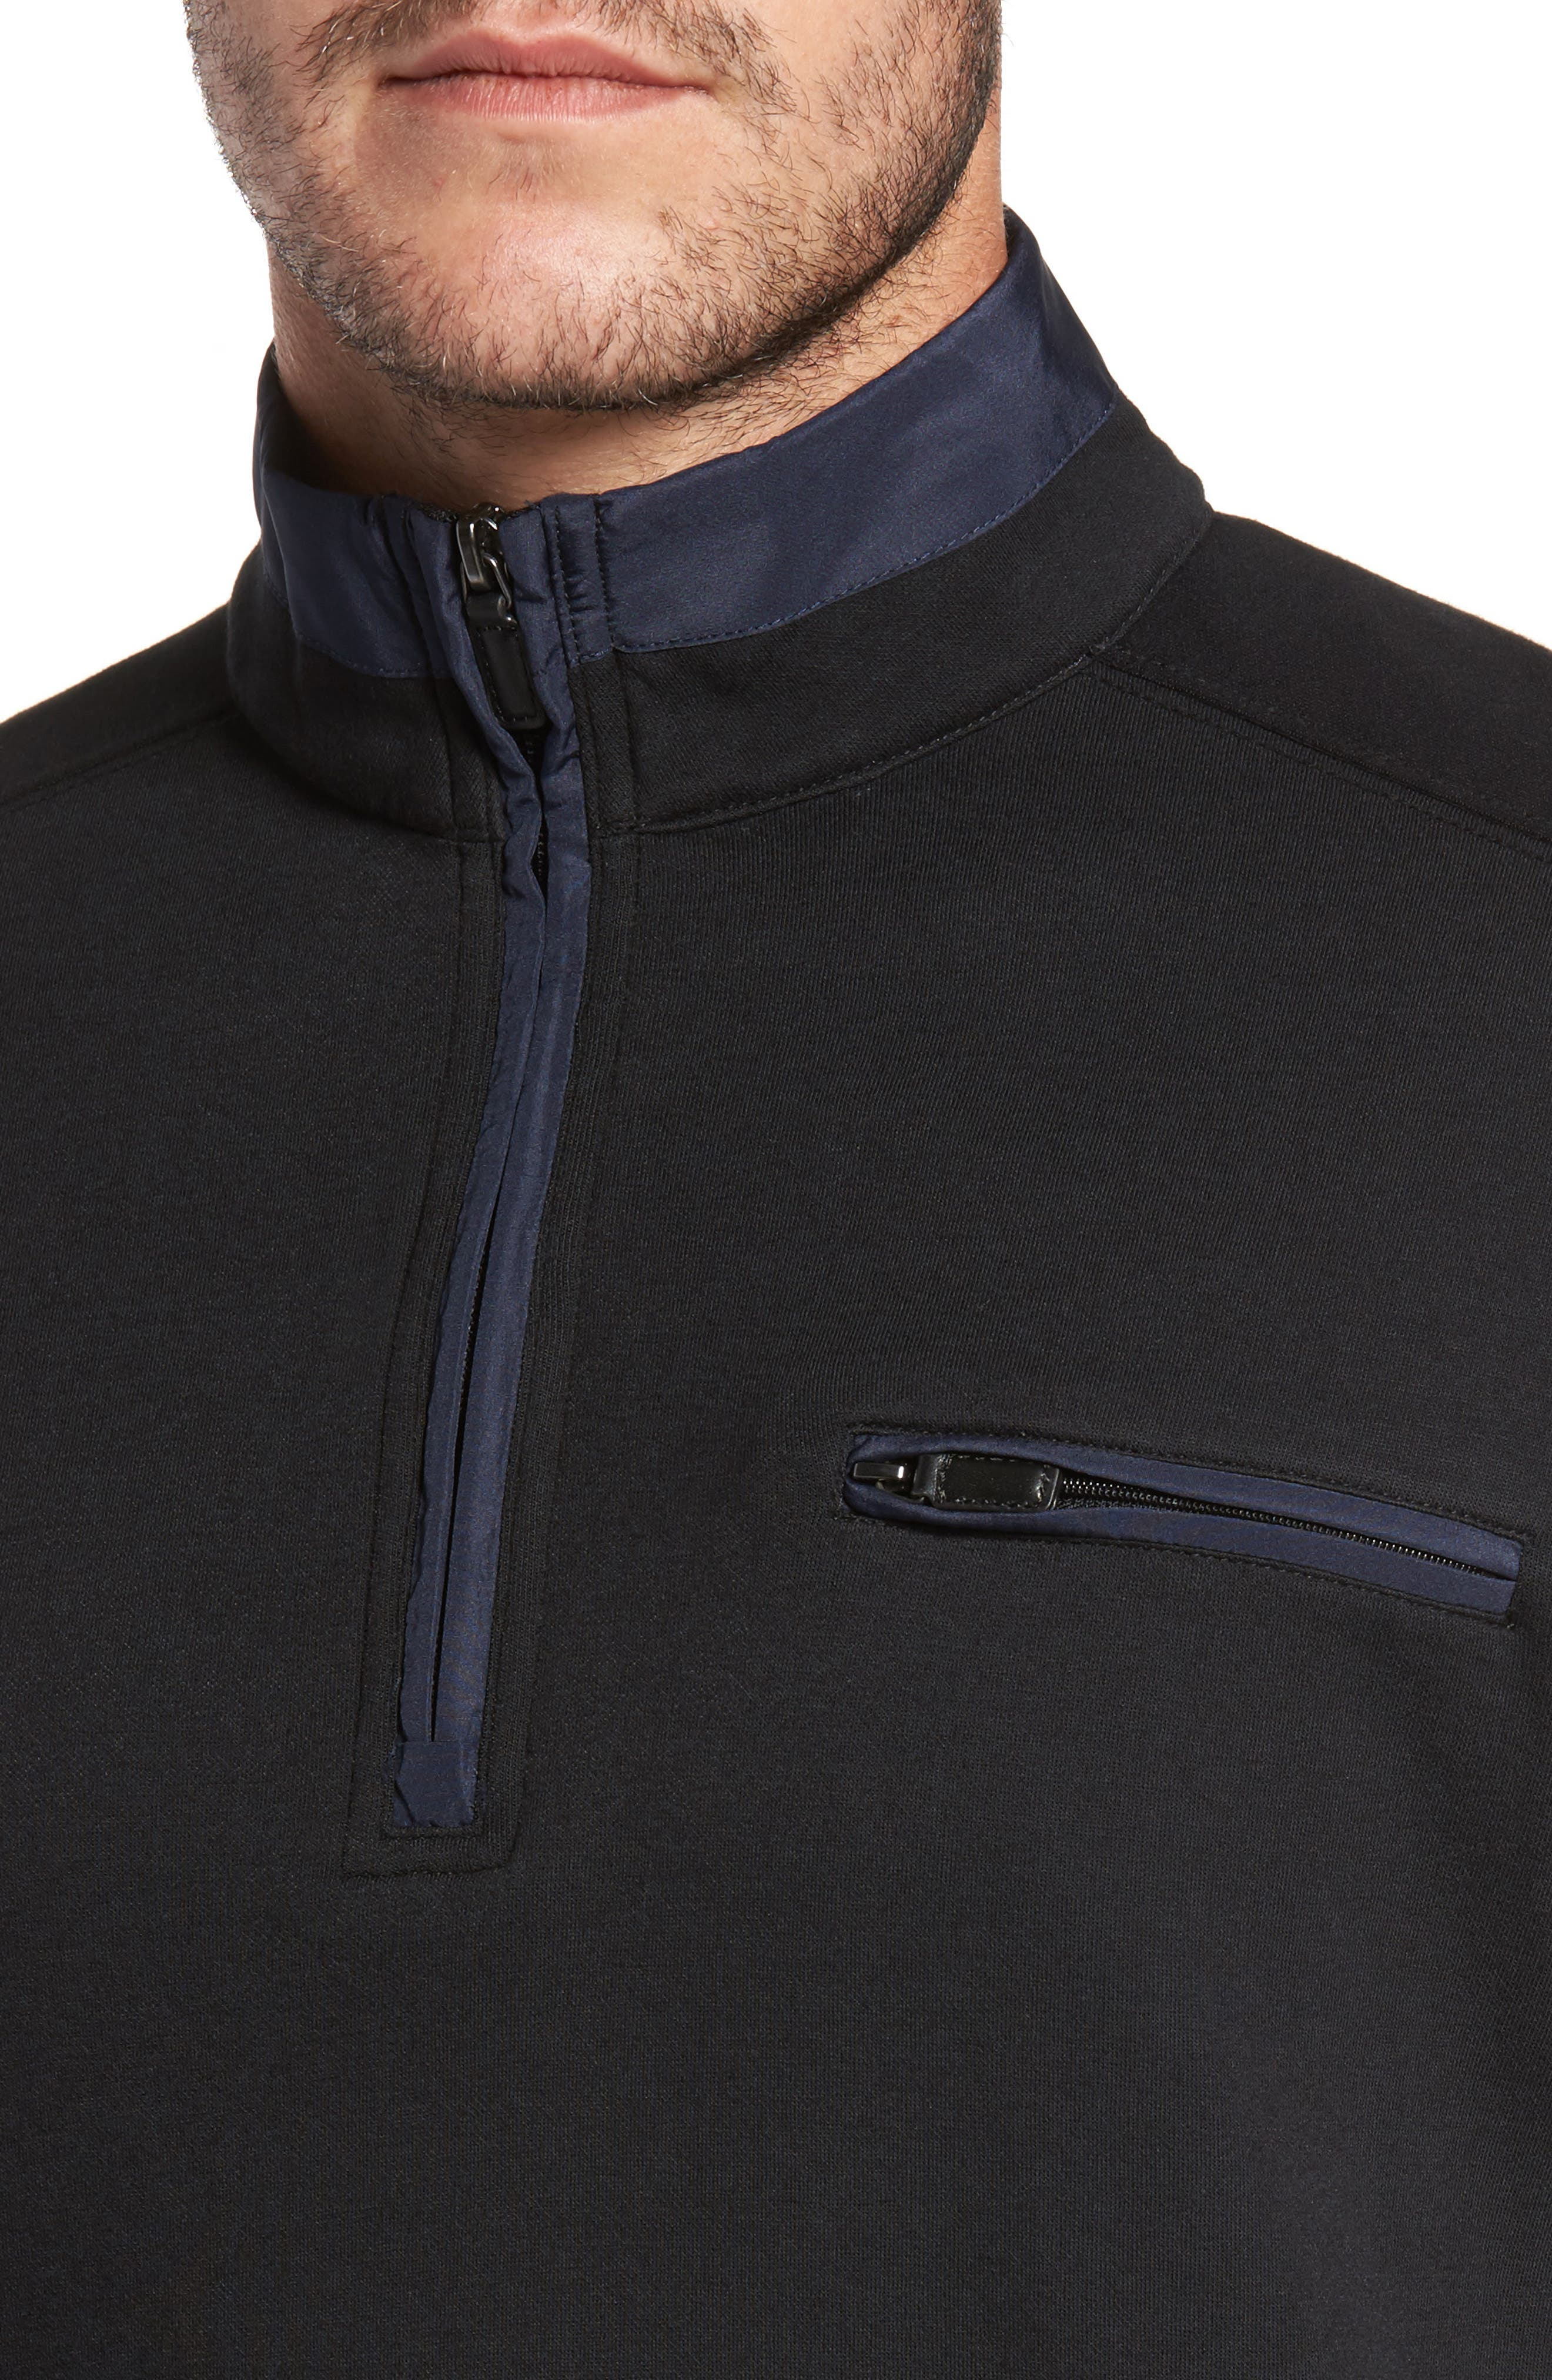 Classic Fit Solid Quarter Zip Pullover,                             Alternate thumbnail 7, color,